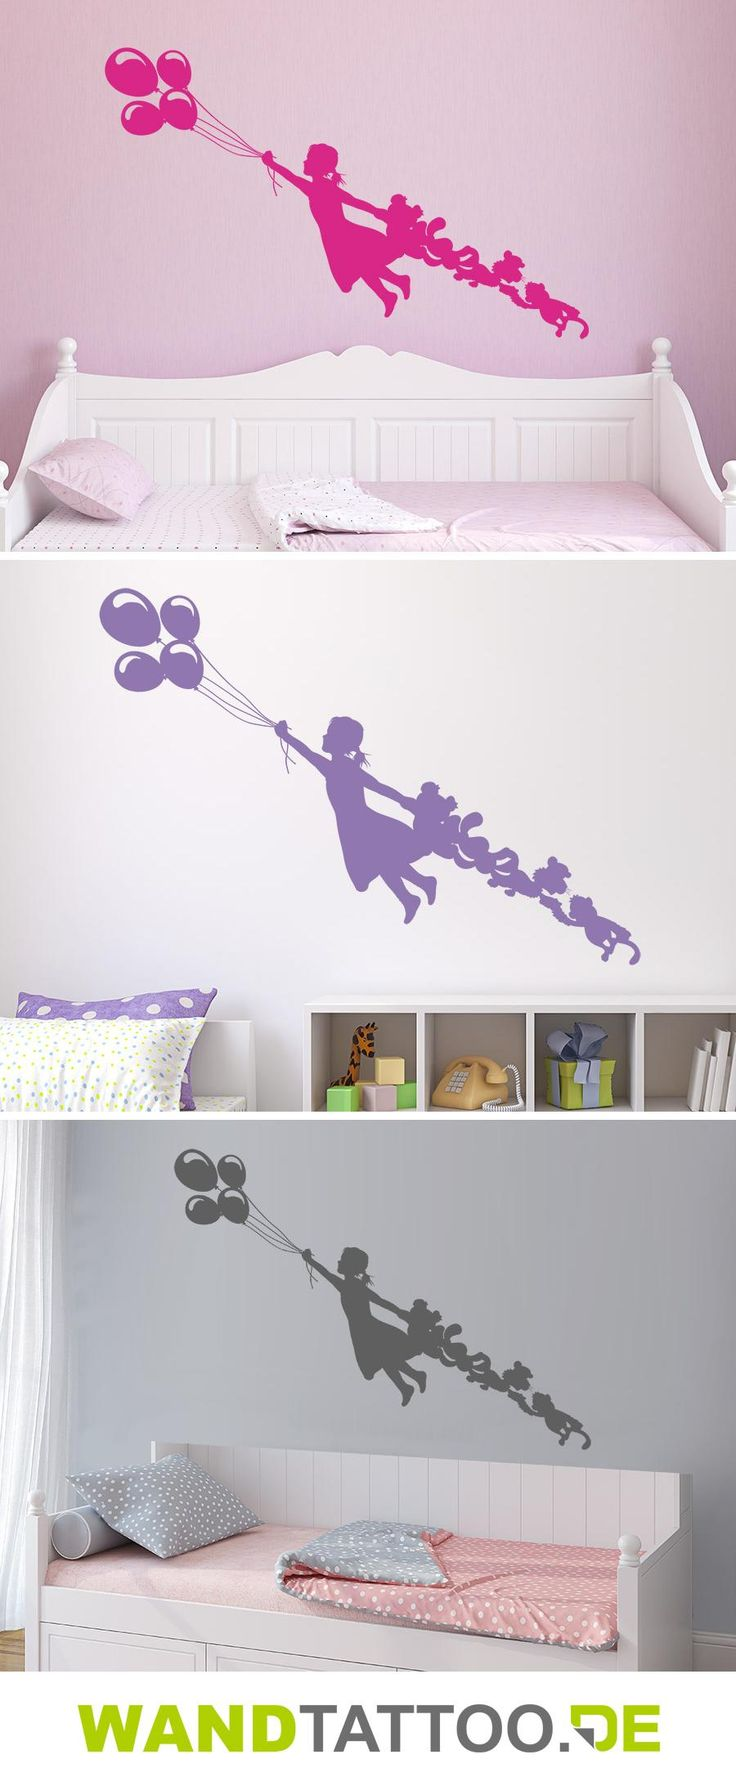 25 best ideas about wandtattoo m dchen on pinterest wandtattoo kinderzimmer wandtattoo. Black Bedroom Furniture Sets. Home Design Ideas